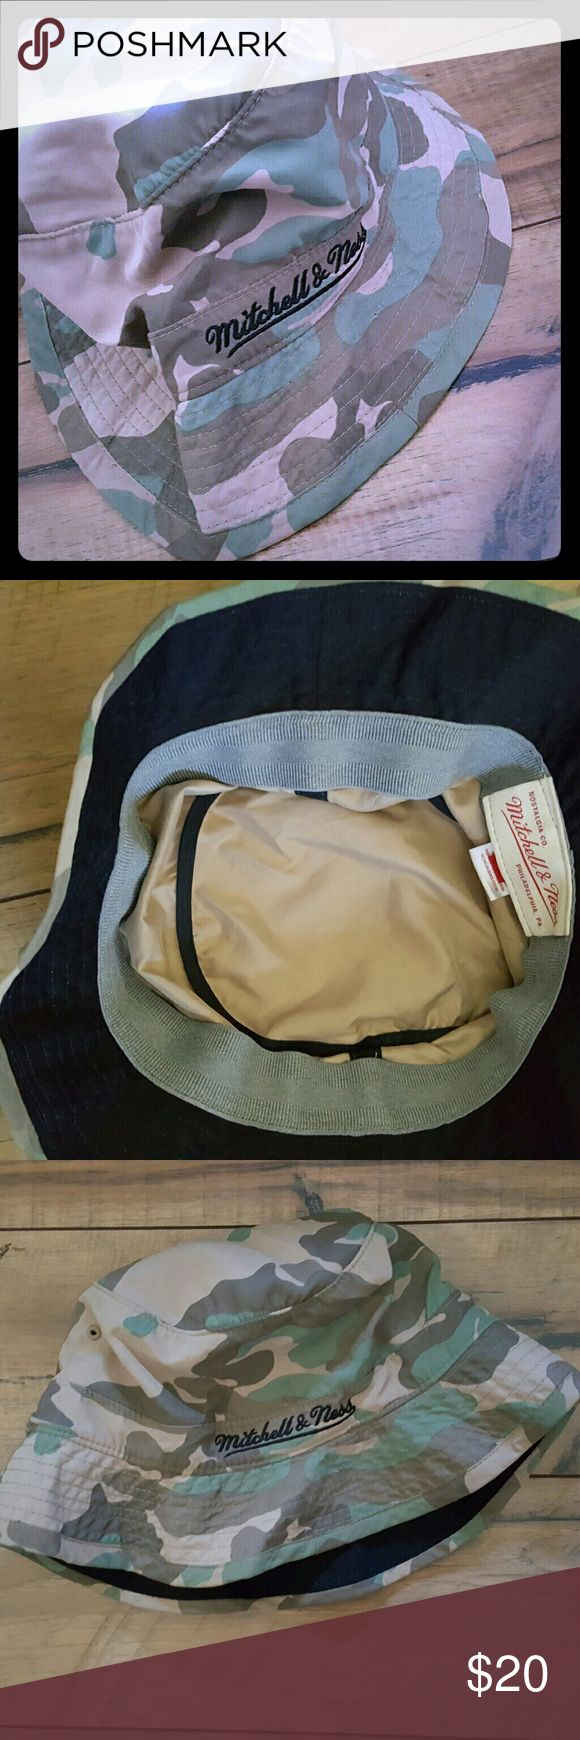 Mitchell & Ness Camo Bucket Hat 100% Authentic  Excellent Used Condition   Perfect lightweight hat for all your outdoor fun!! Mitchell & Ness Accessories Hats